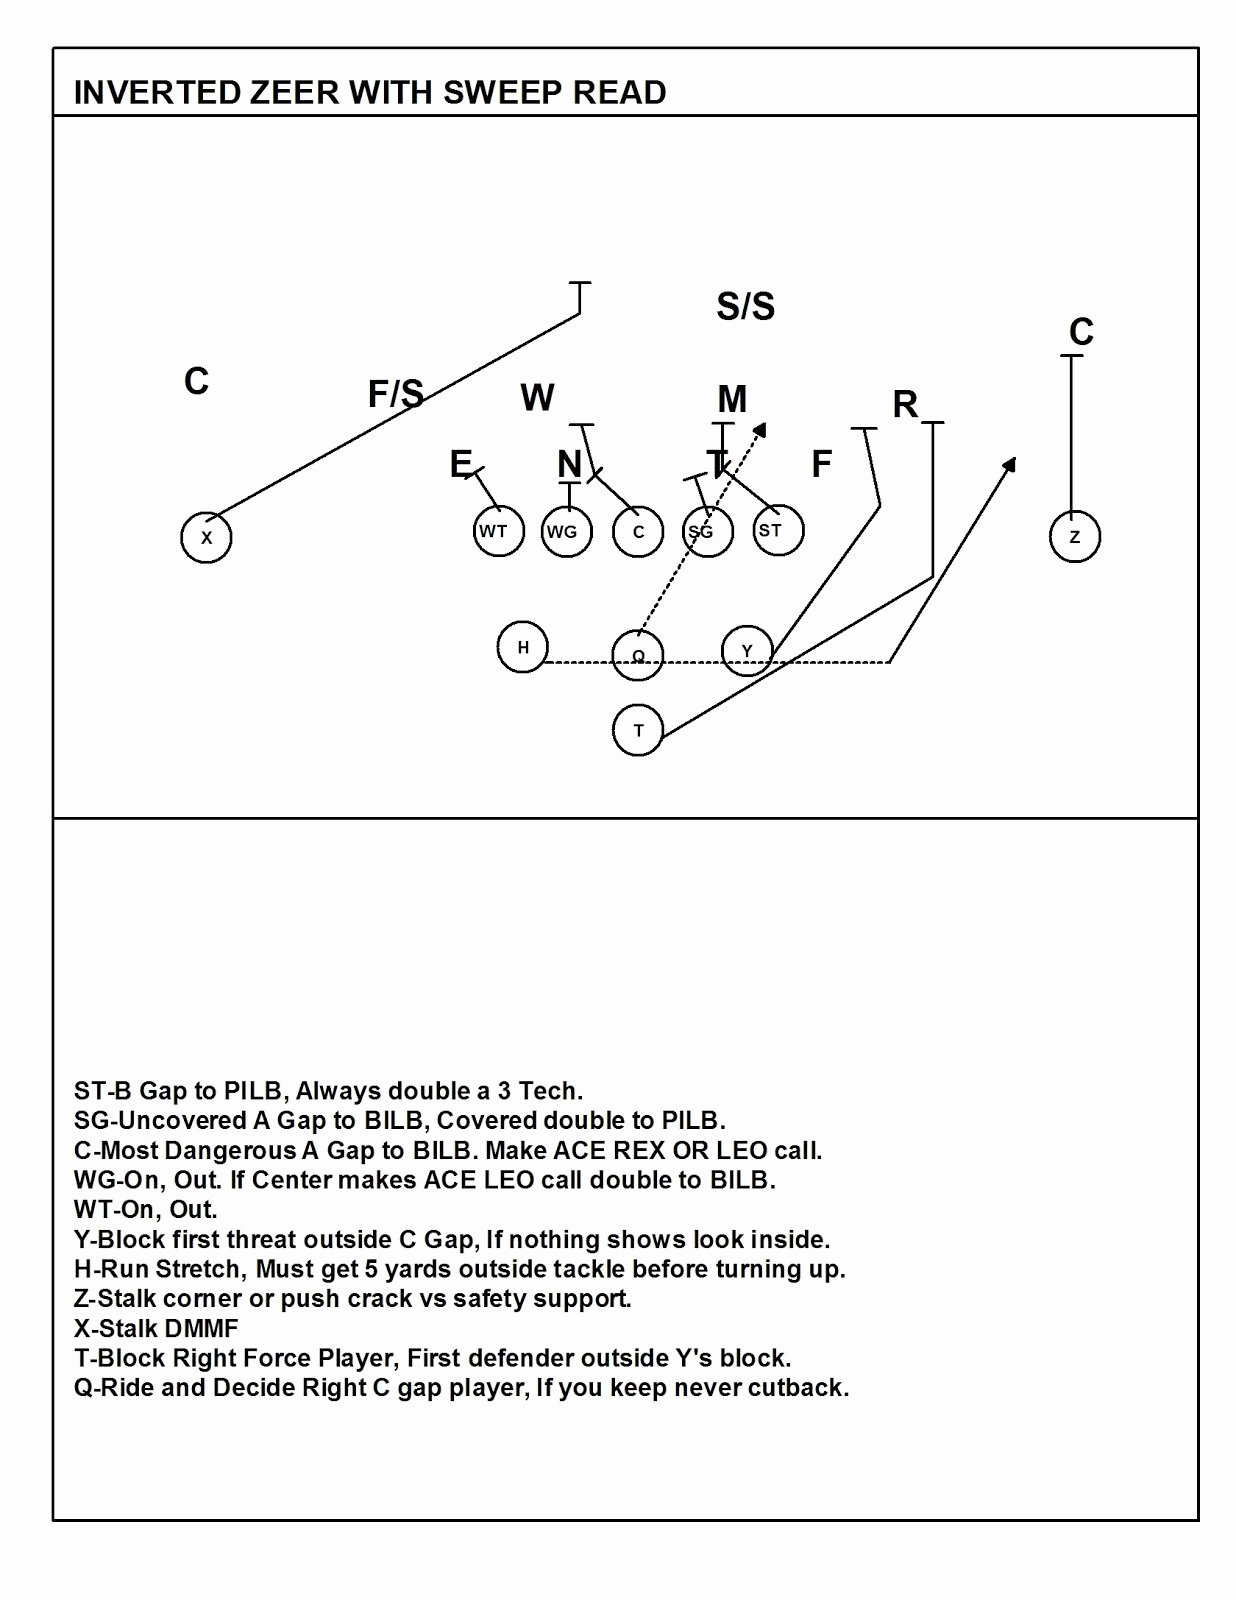 Football Offensive formations Template Lovely Wishbone formation Football Playbook